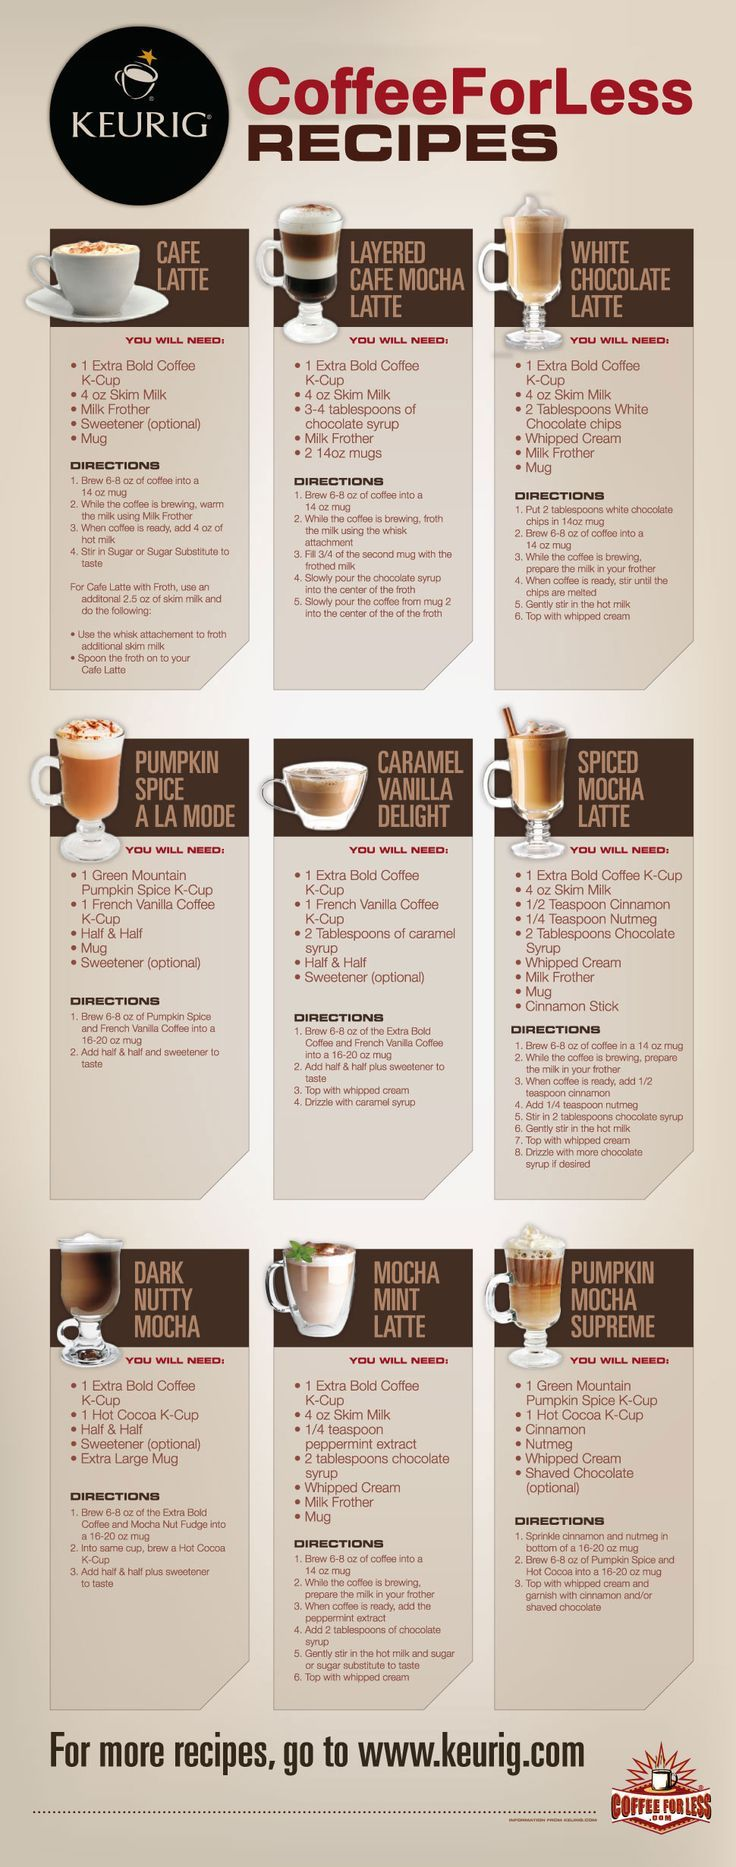 9 Keurig K-Cup coffee recipes for unique coffee drinks. @carynknightnobles I thought you might be interested in this!